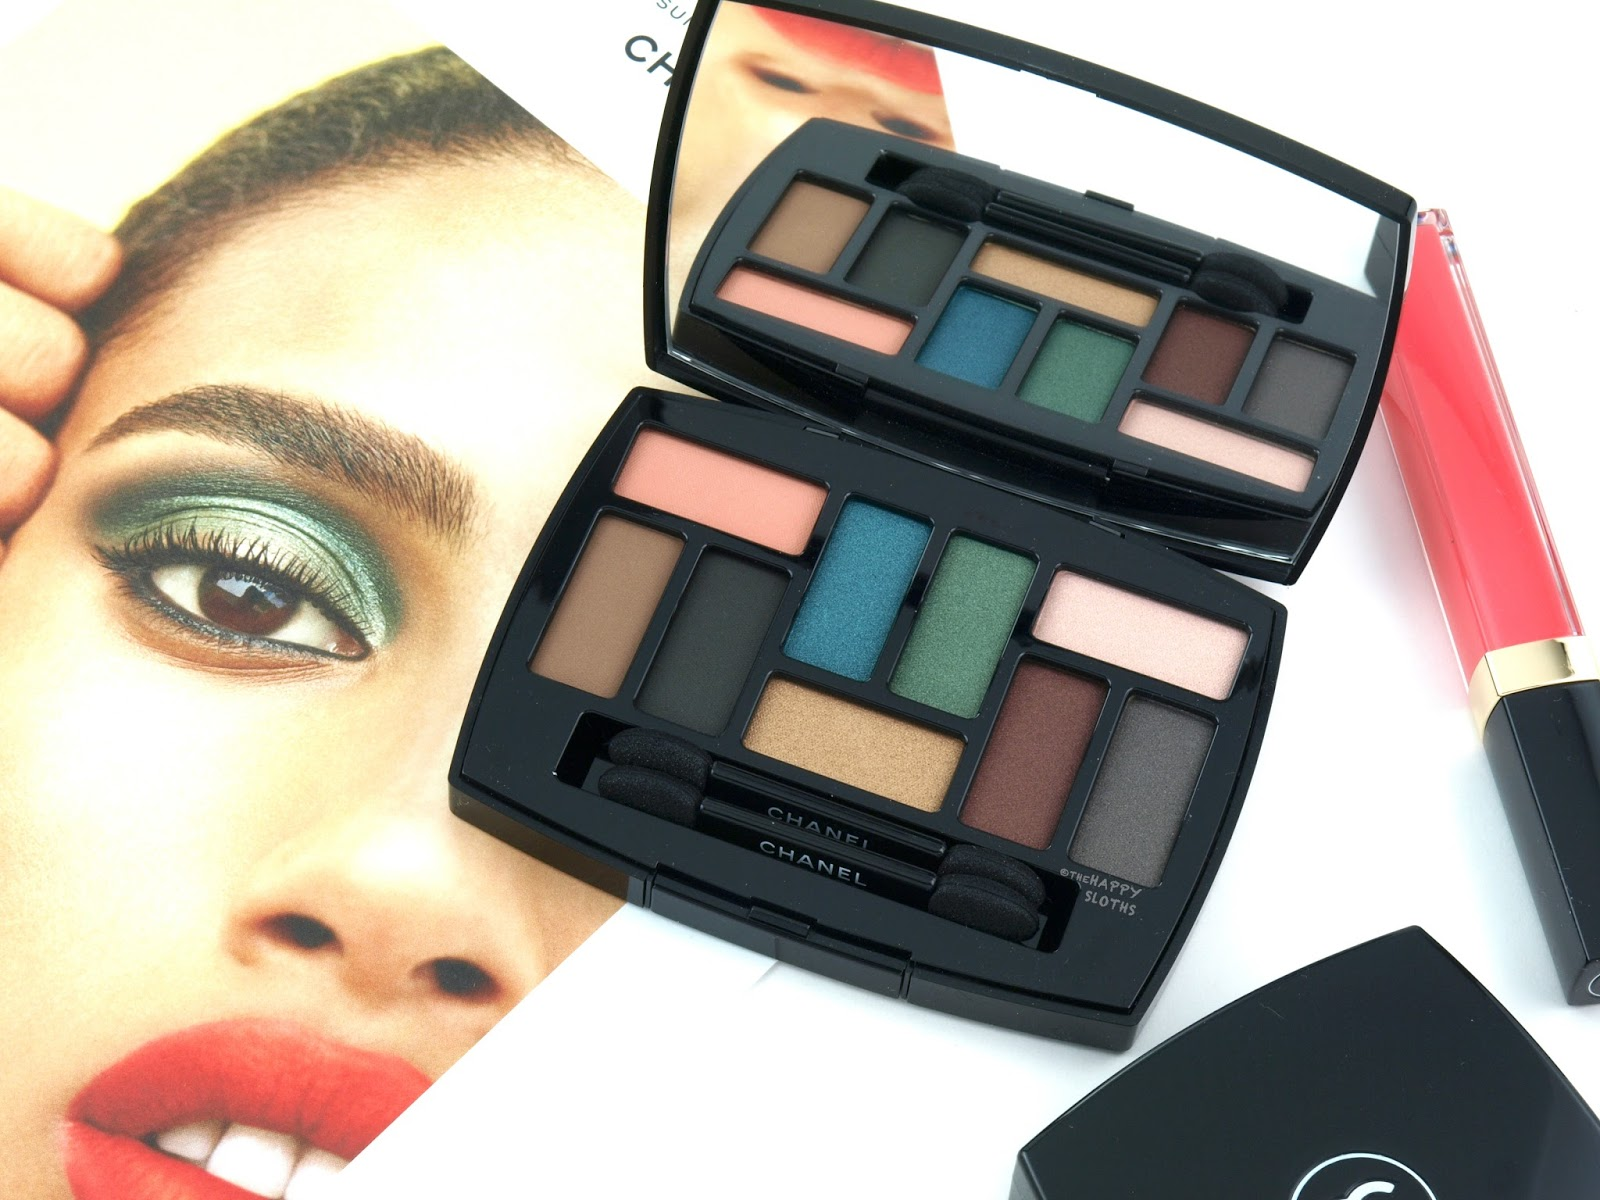 Chanel Spring/Summer 2018 | Les 9 Ombres Palette Édition N°1: Affresco: Review and Swatches